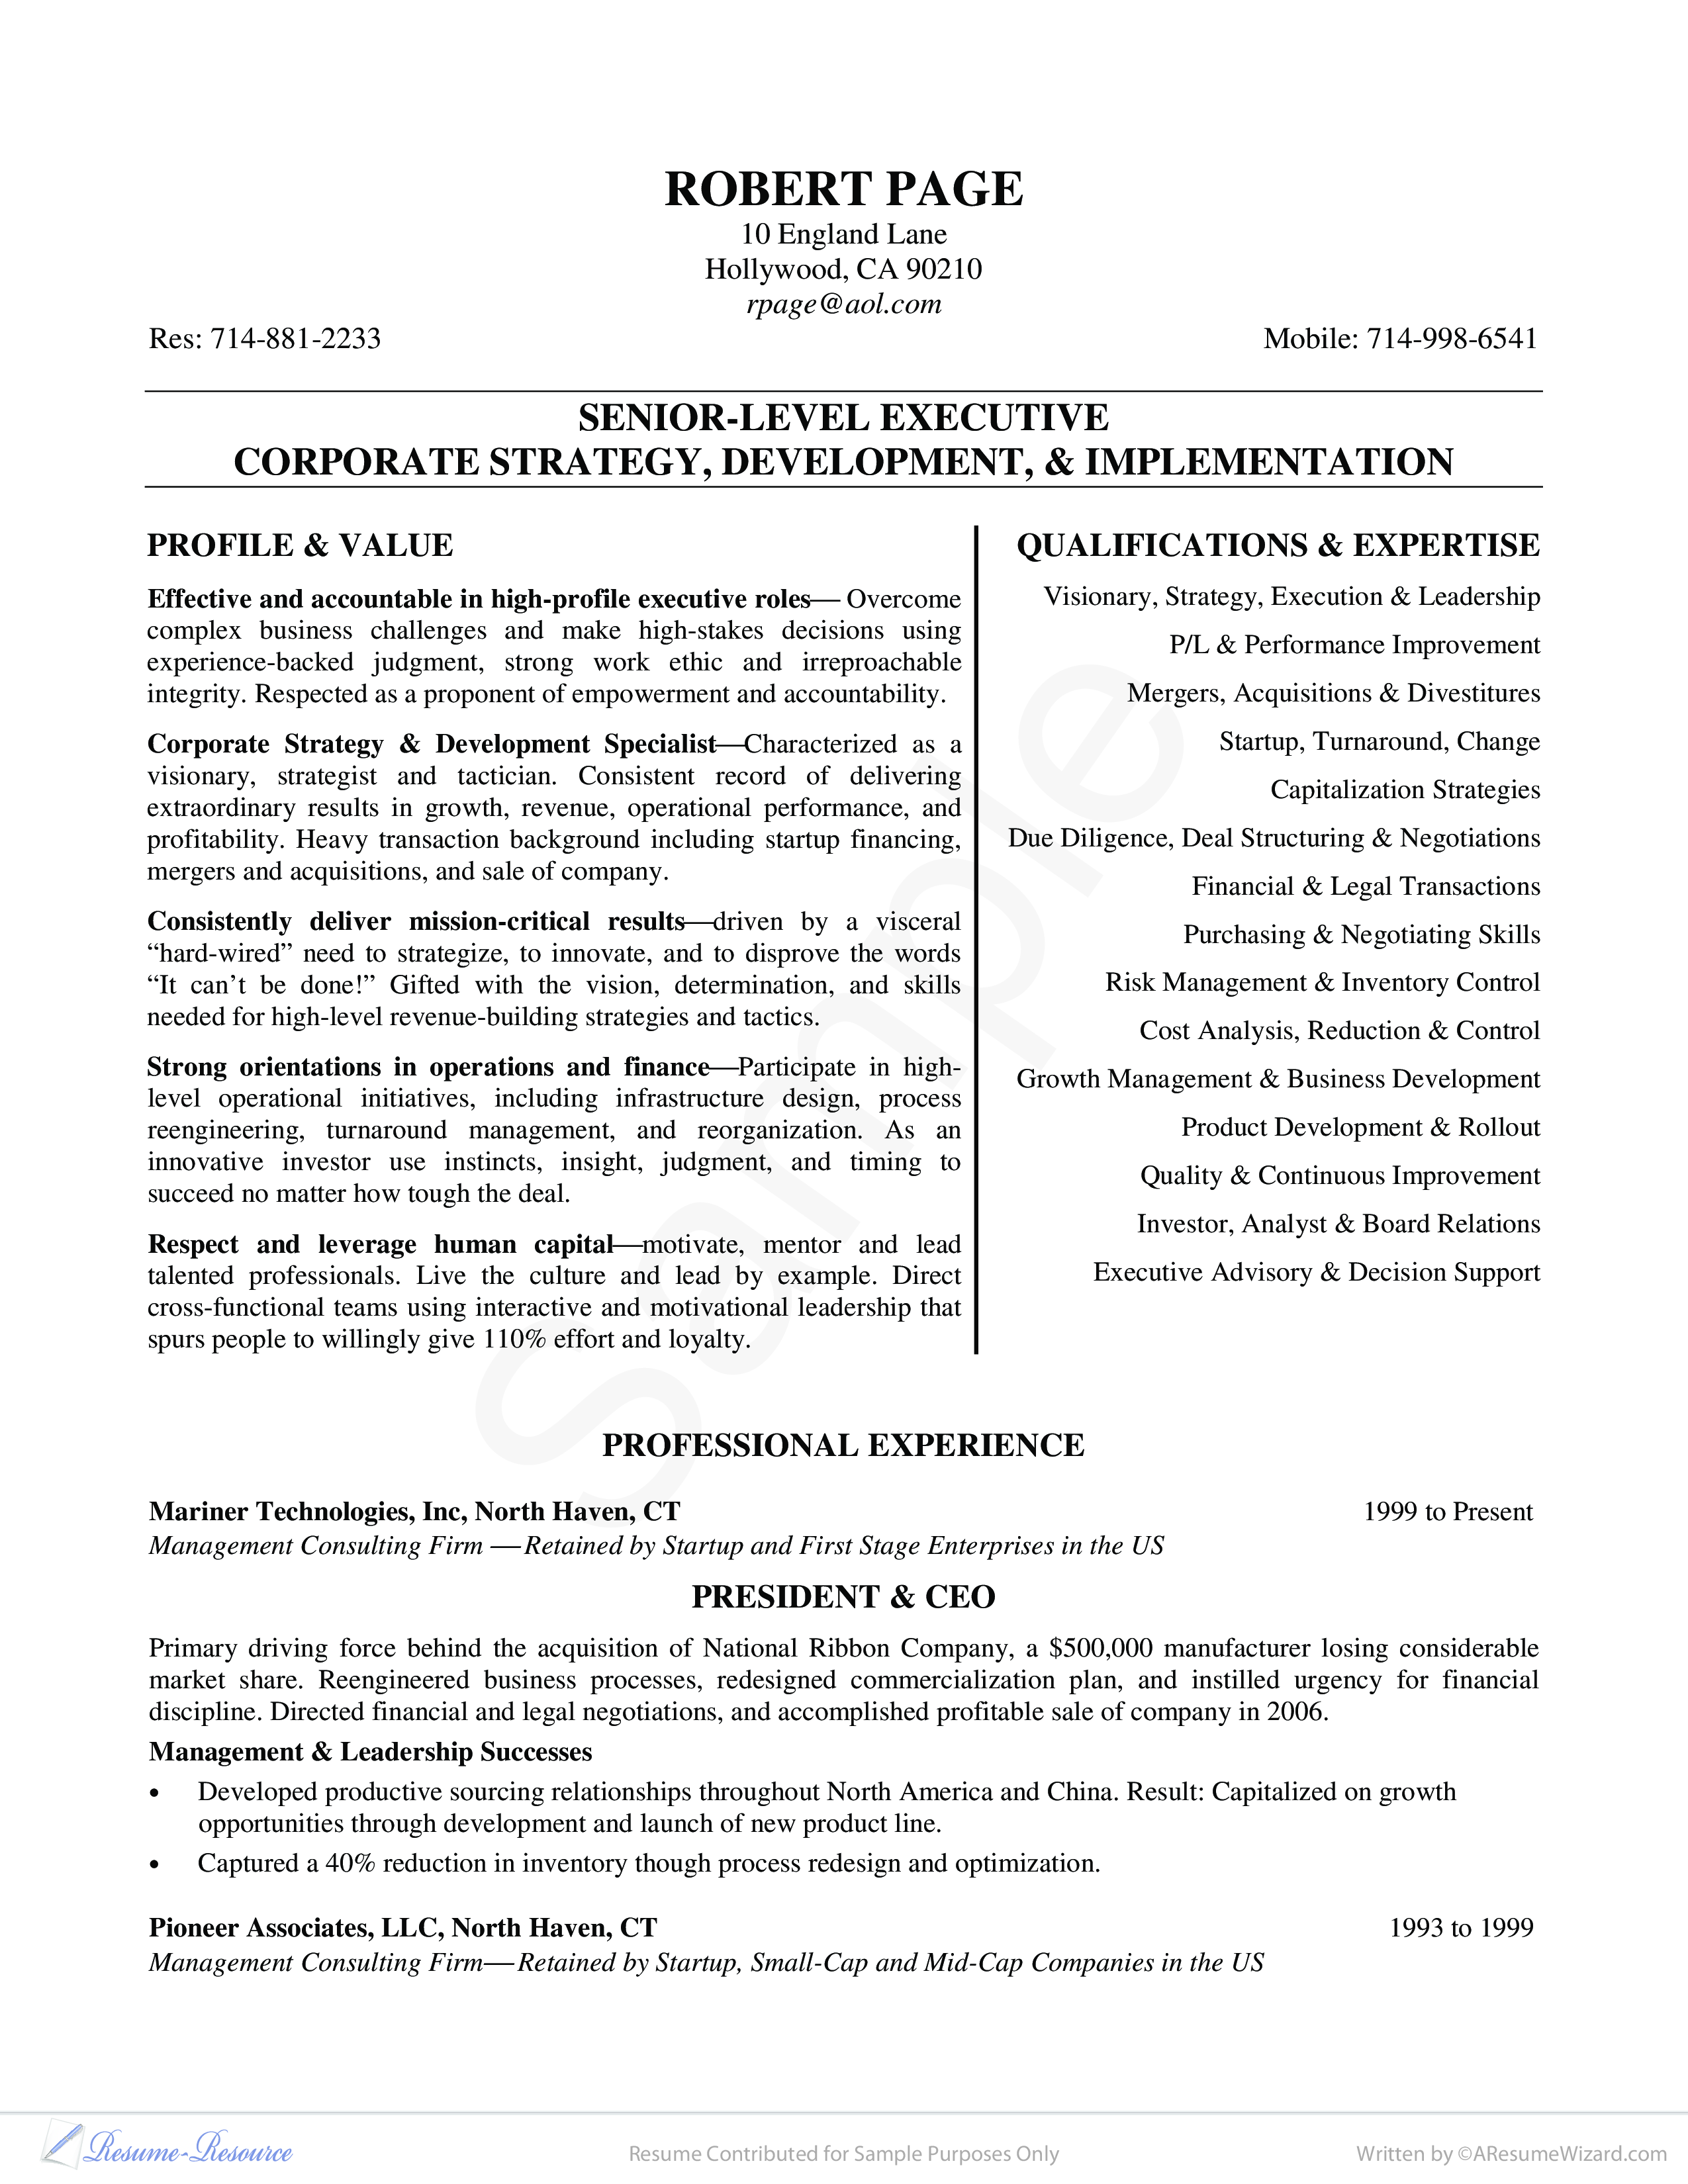 Purchasing Executive Cover Letter Exex11 Pdf Contributed For Business Cv Samples Professional